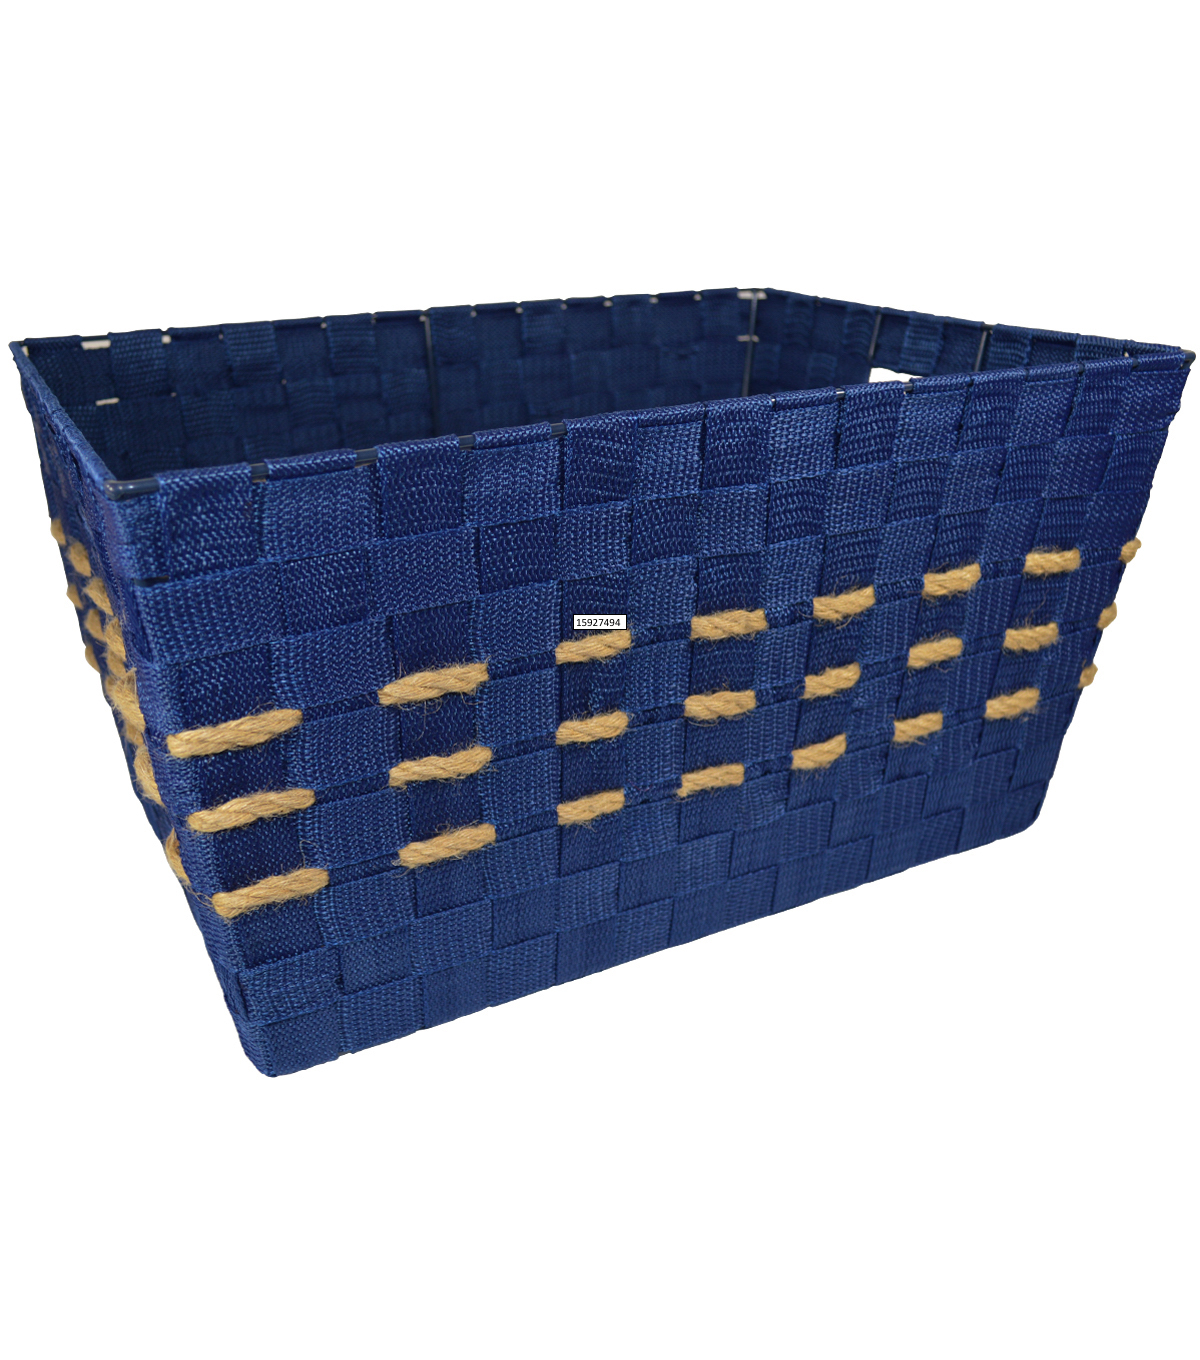 Organizing Essentials Large Strap Bin With Hemp Yarn-Navy